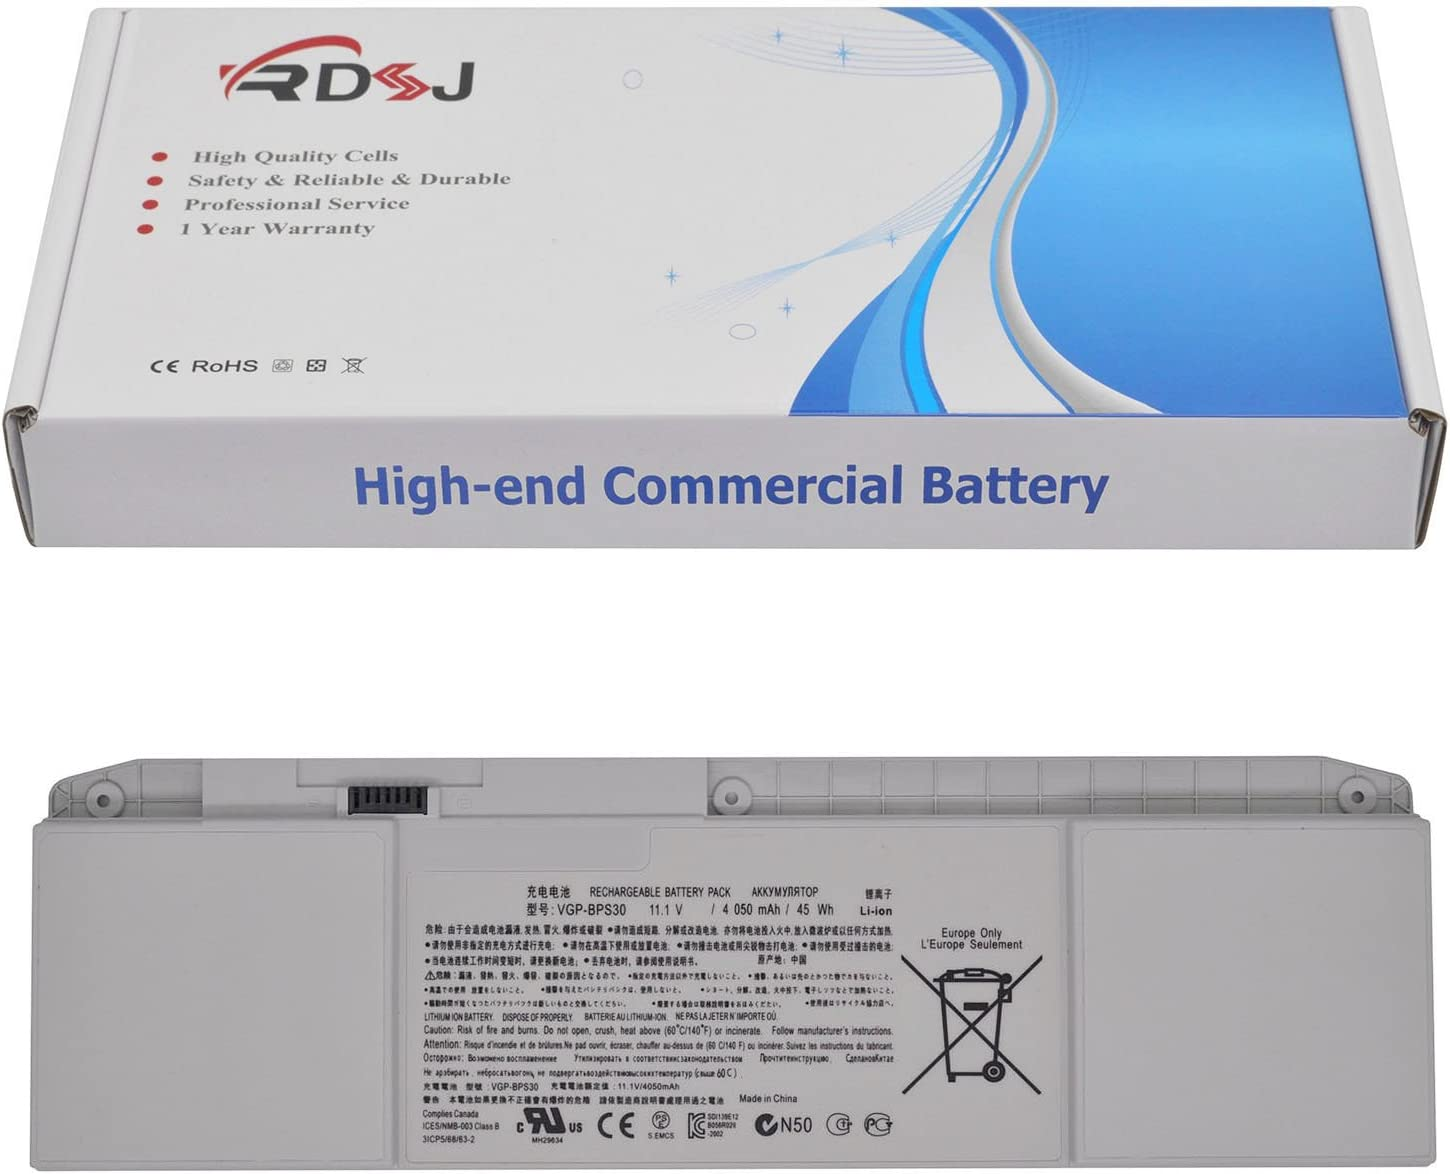 VGP-BPS30 Laptop Battery for Sony VAIO T11 T13 VAIO SVT111 SVT131 SVT1112 SVT1311 SVT1312 Series SVT131A11L SVT131B11M SVT131A11M VGP-BPS30A 11.1V 45Wh